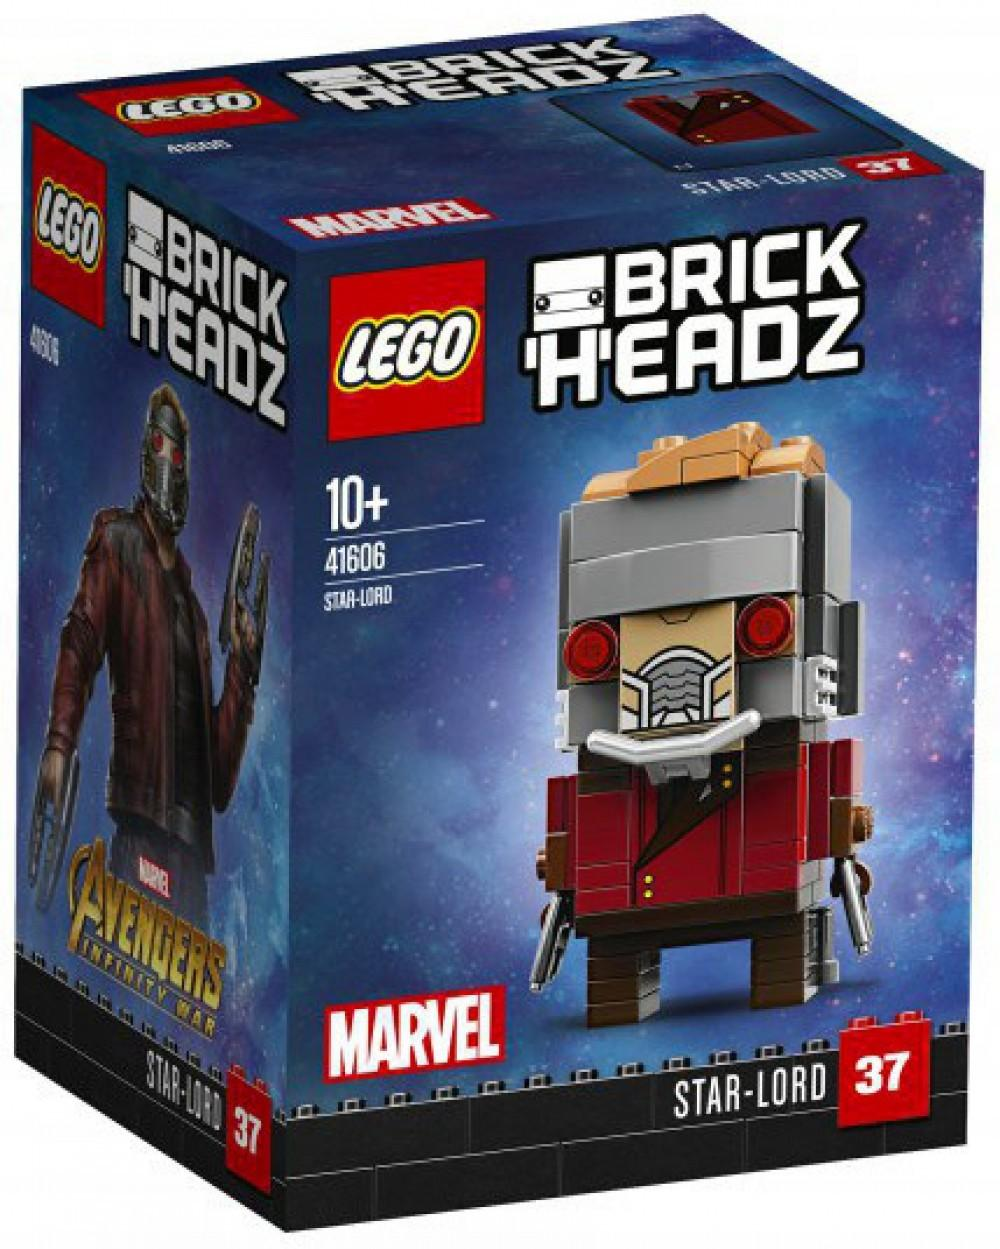 Review Lego Brickheadz 41606 Star Lord Lego